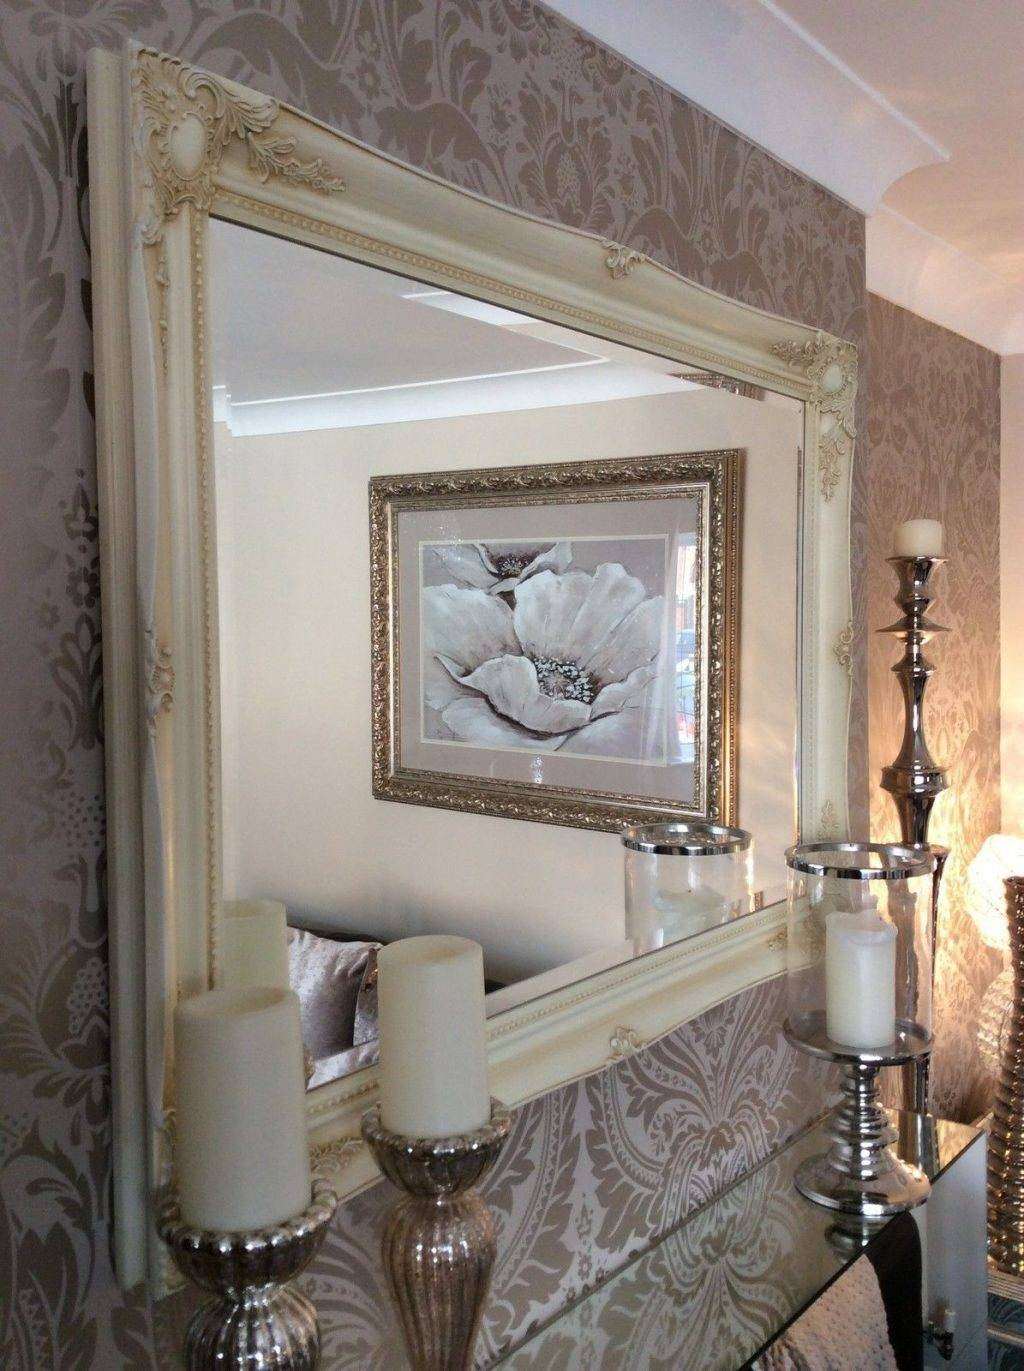 Shabby Chic Wall Mirror 73 Trendy Interior Or Fabulous Large Cream within Shabby Chic Large Mirrors (Image 23 of 25)